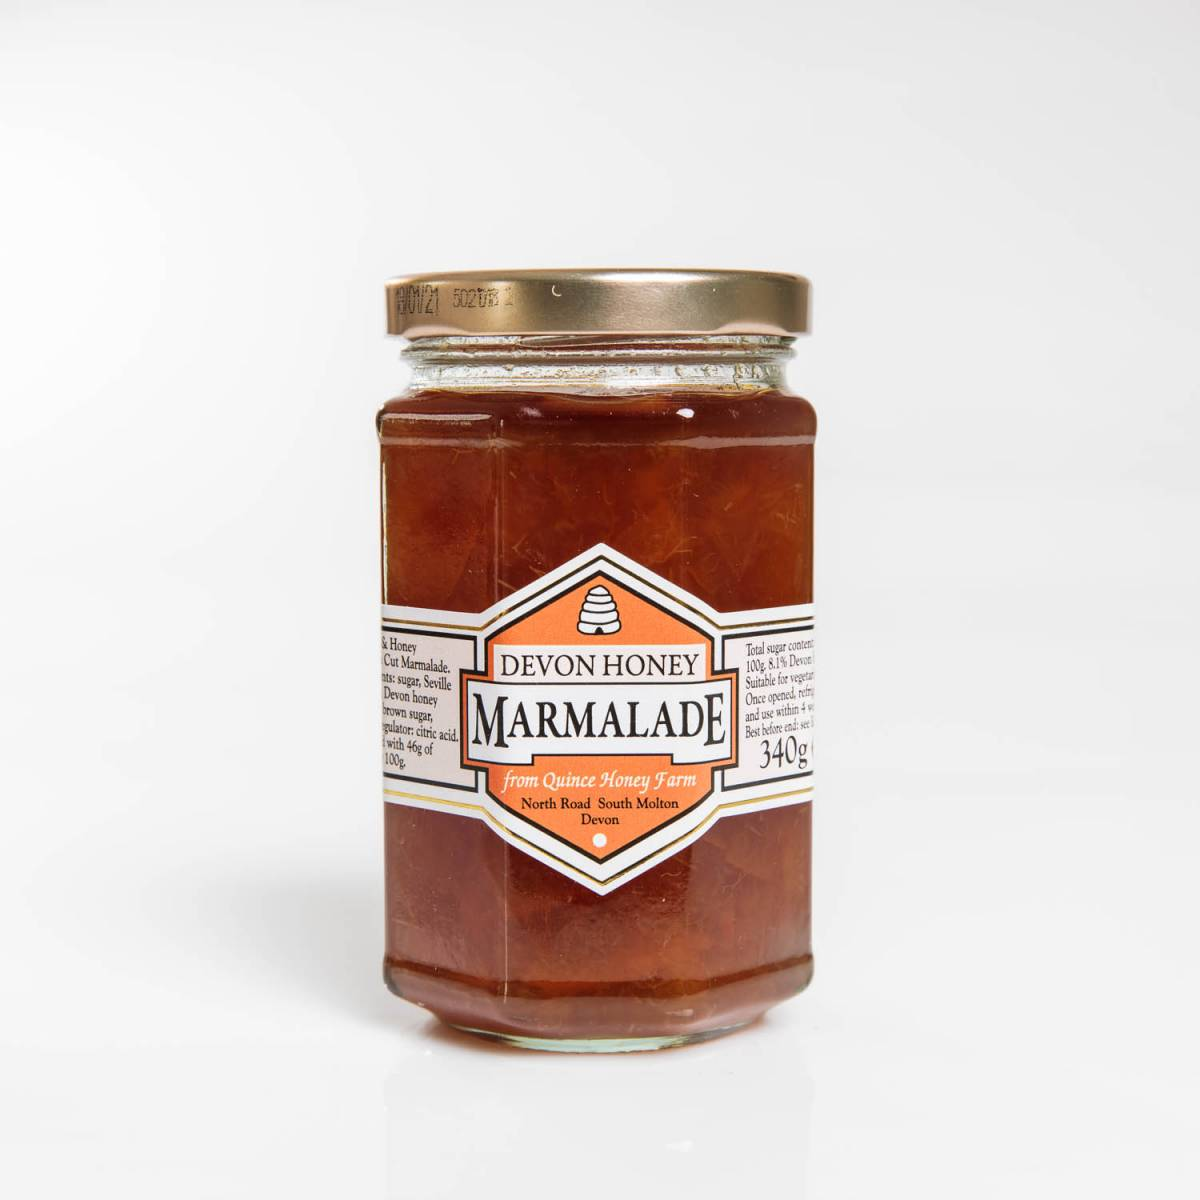 devon honey marmalade 340g